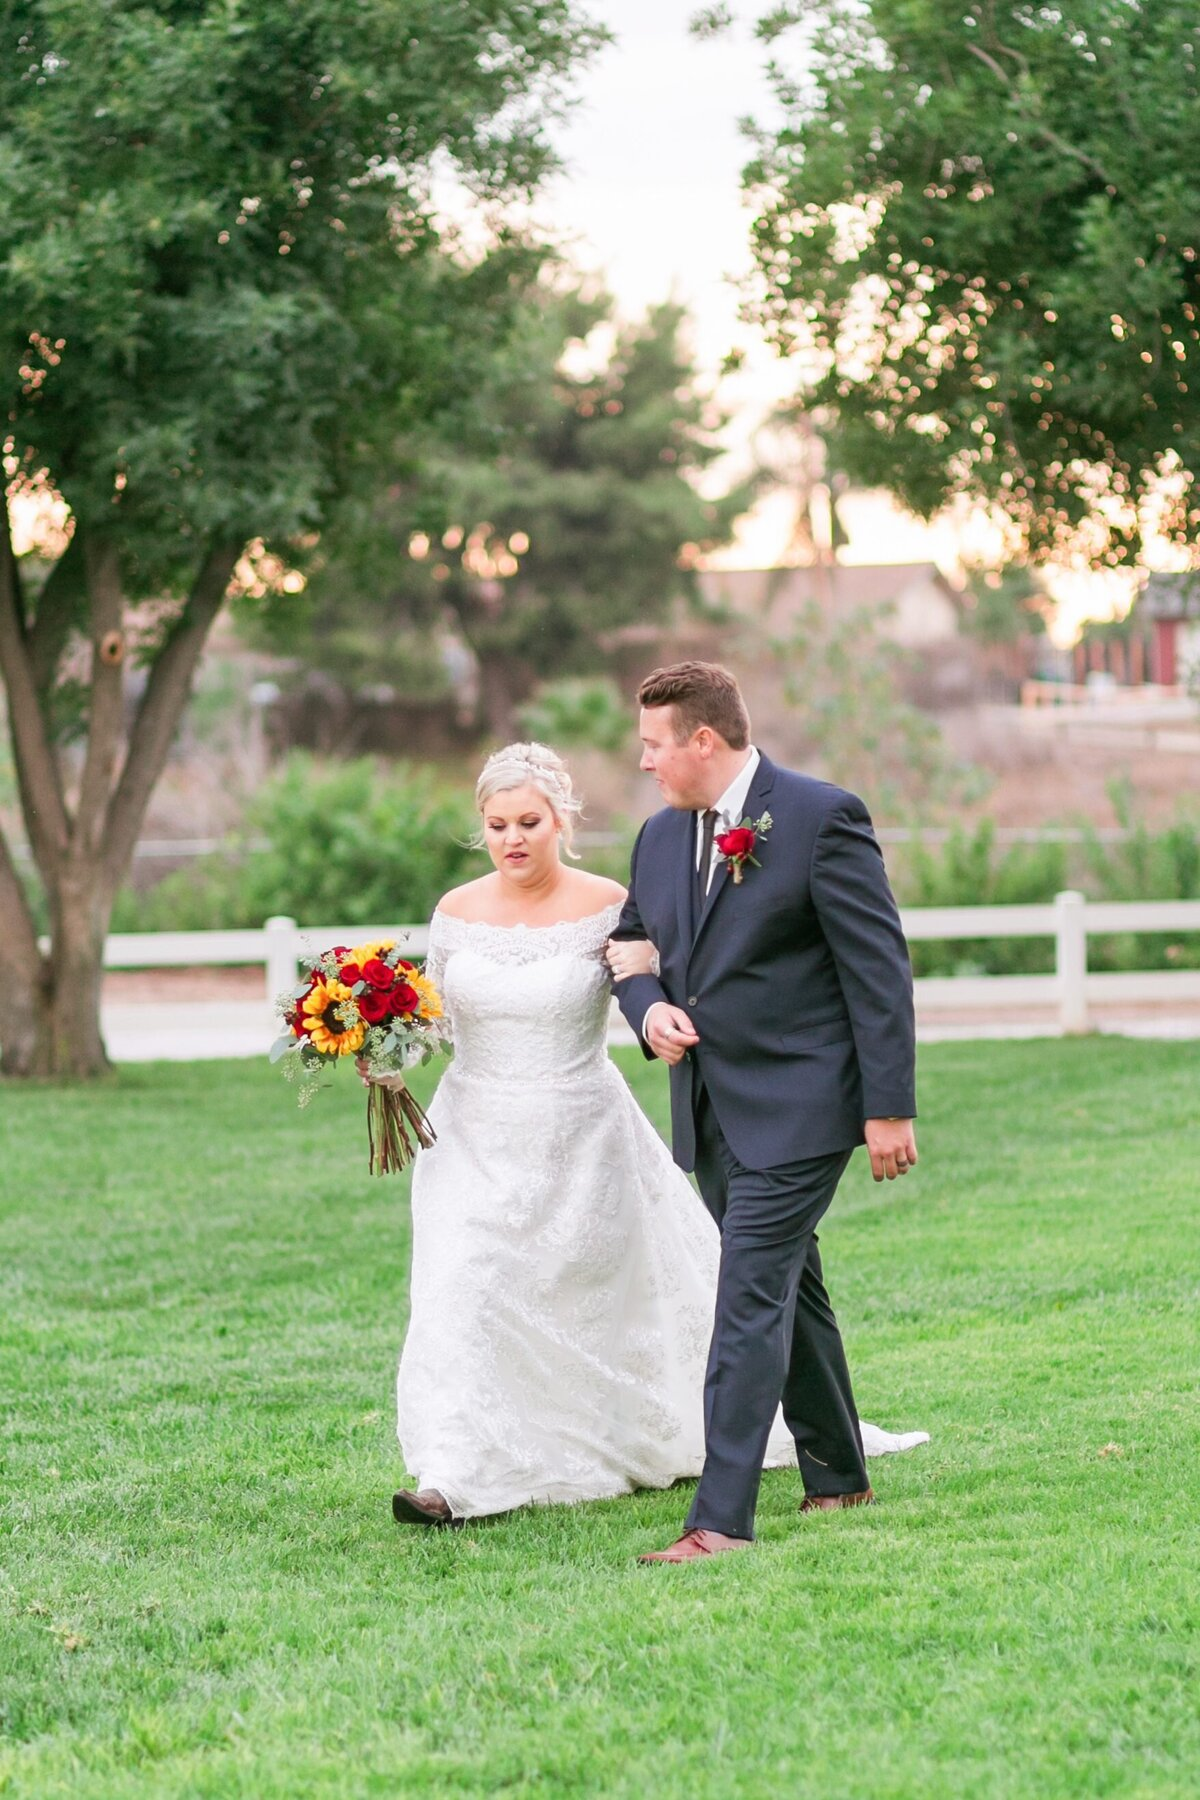 Kelli-Bee-Photography-Gallery-Farm-Southern-CA-Norco-Rustic-Wedding-Luxury-Lifestyle-Photographer-Lauren-Ben-0050